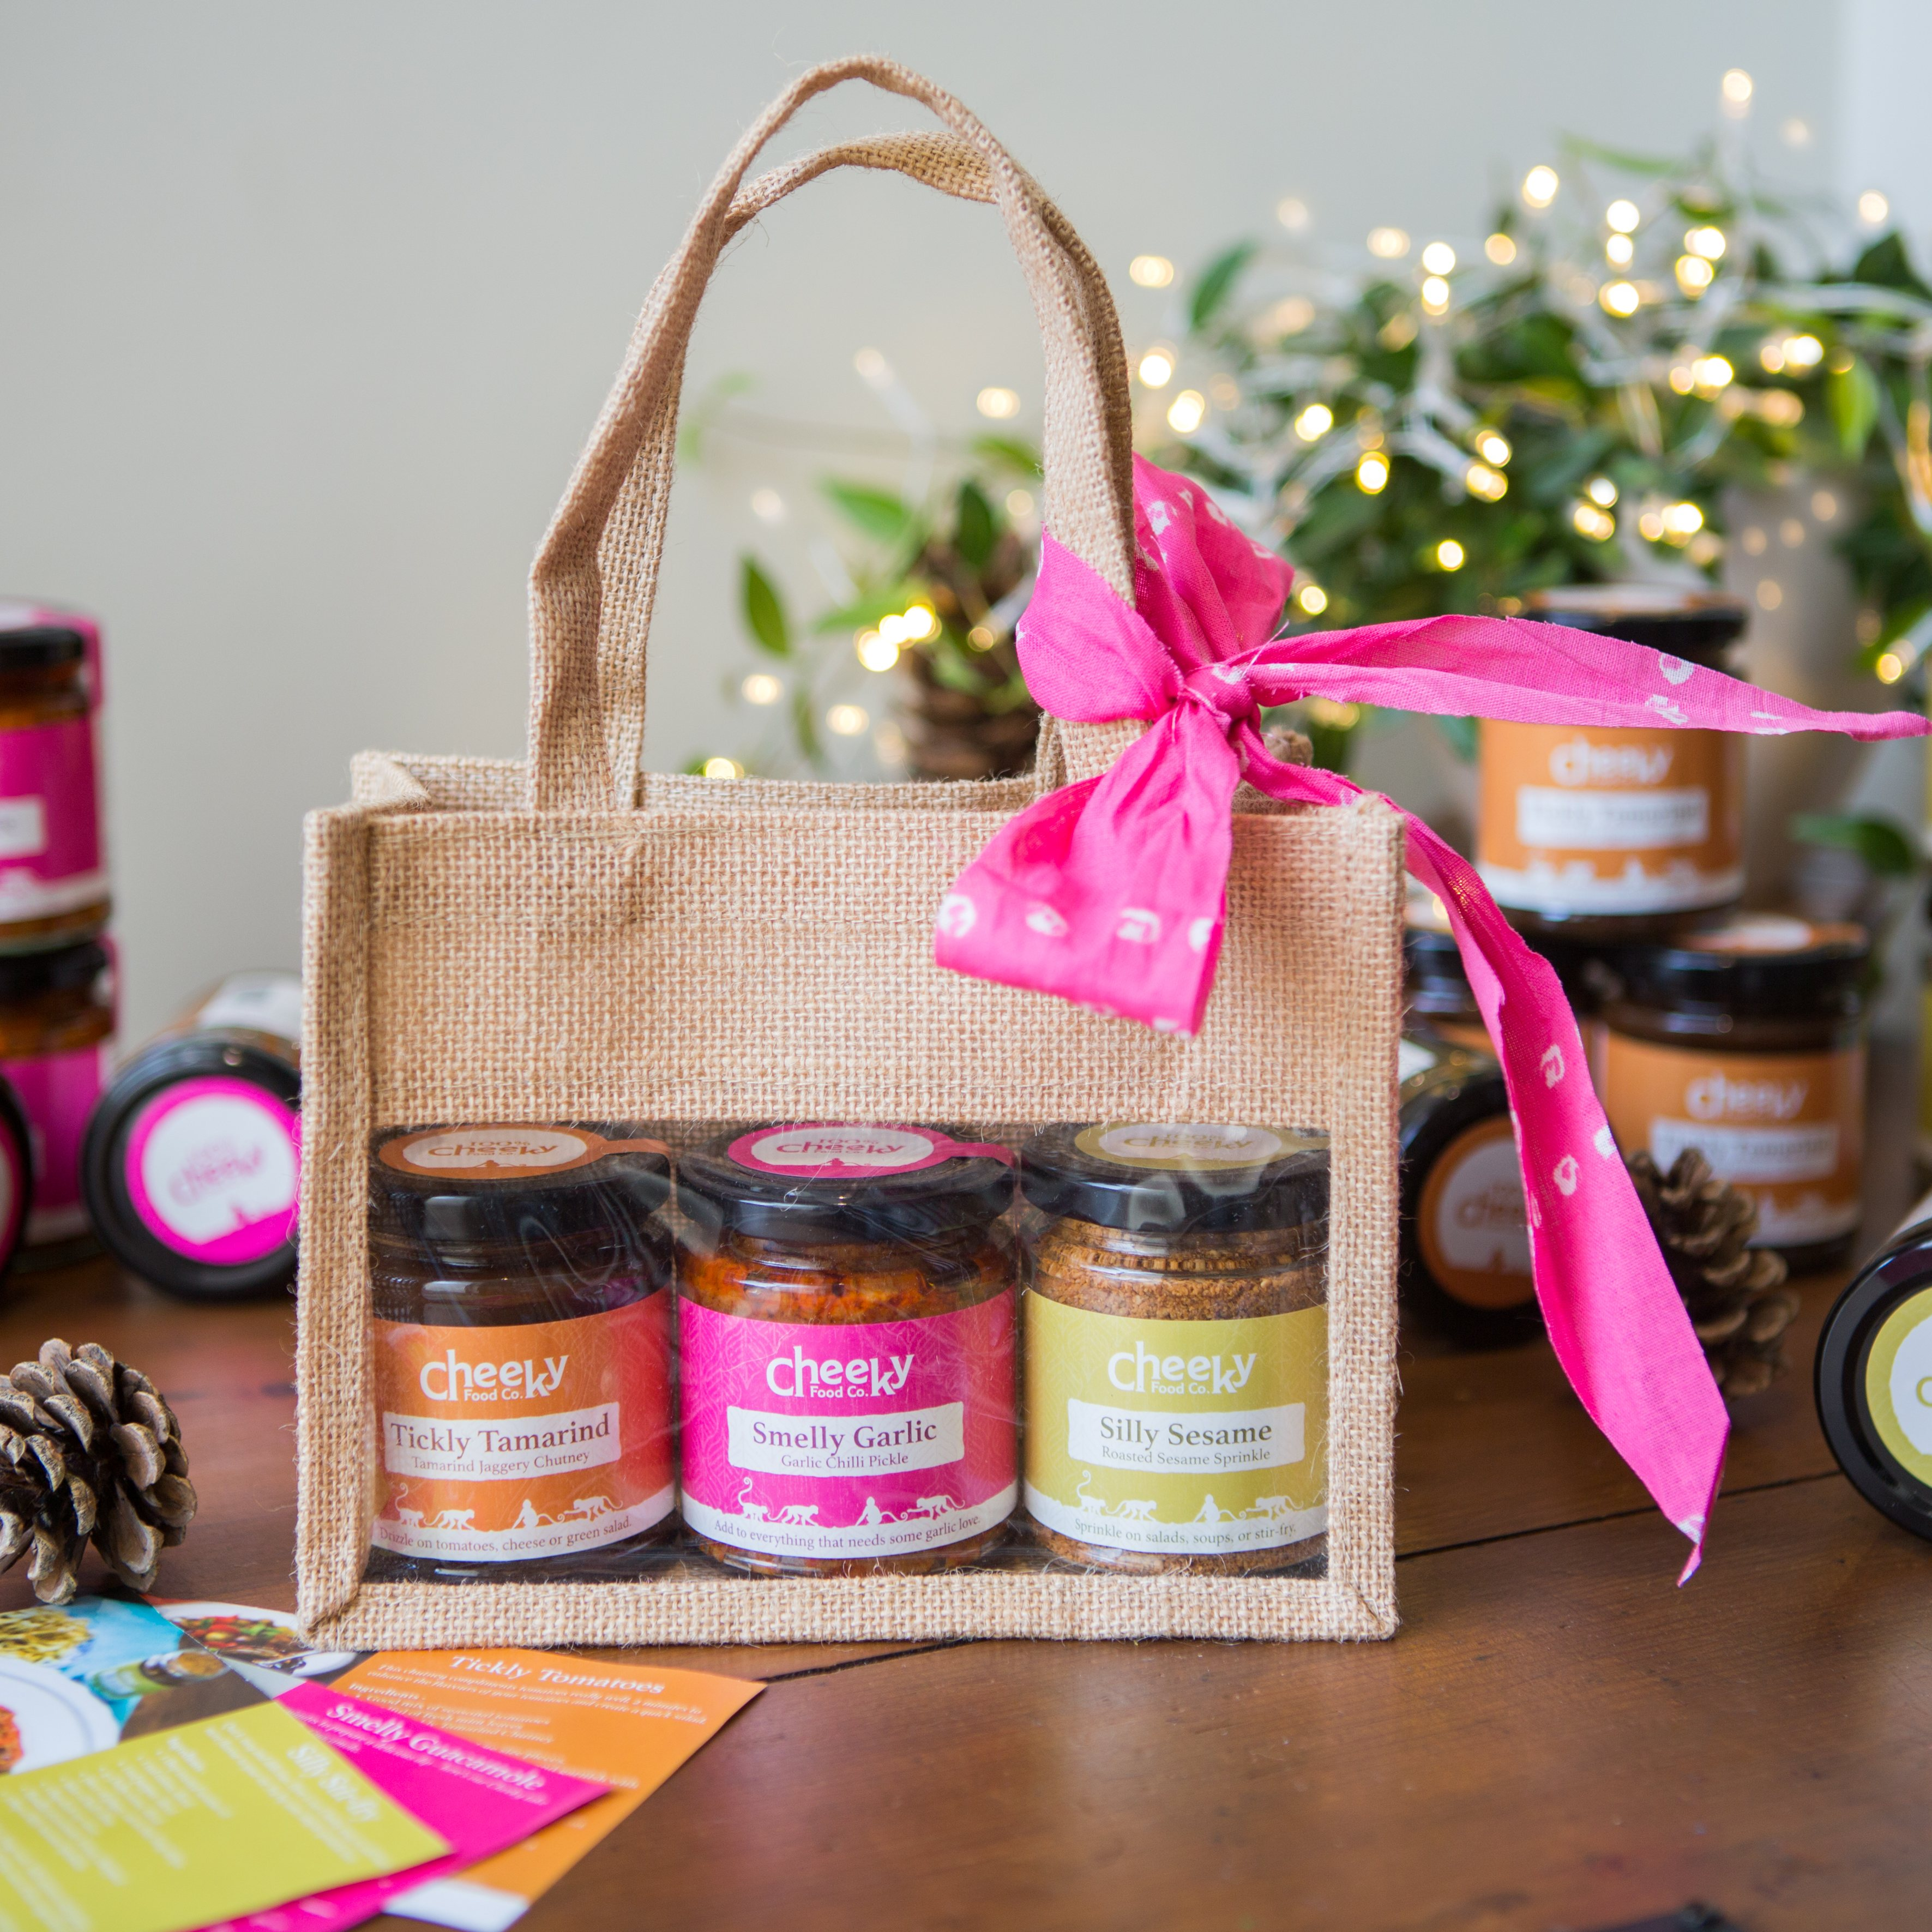 Gluten free vegan condiments gift set yumbles gluten free vegan condiments gift set negle Choice Image